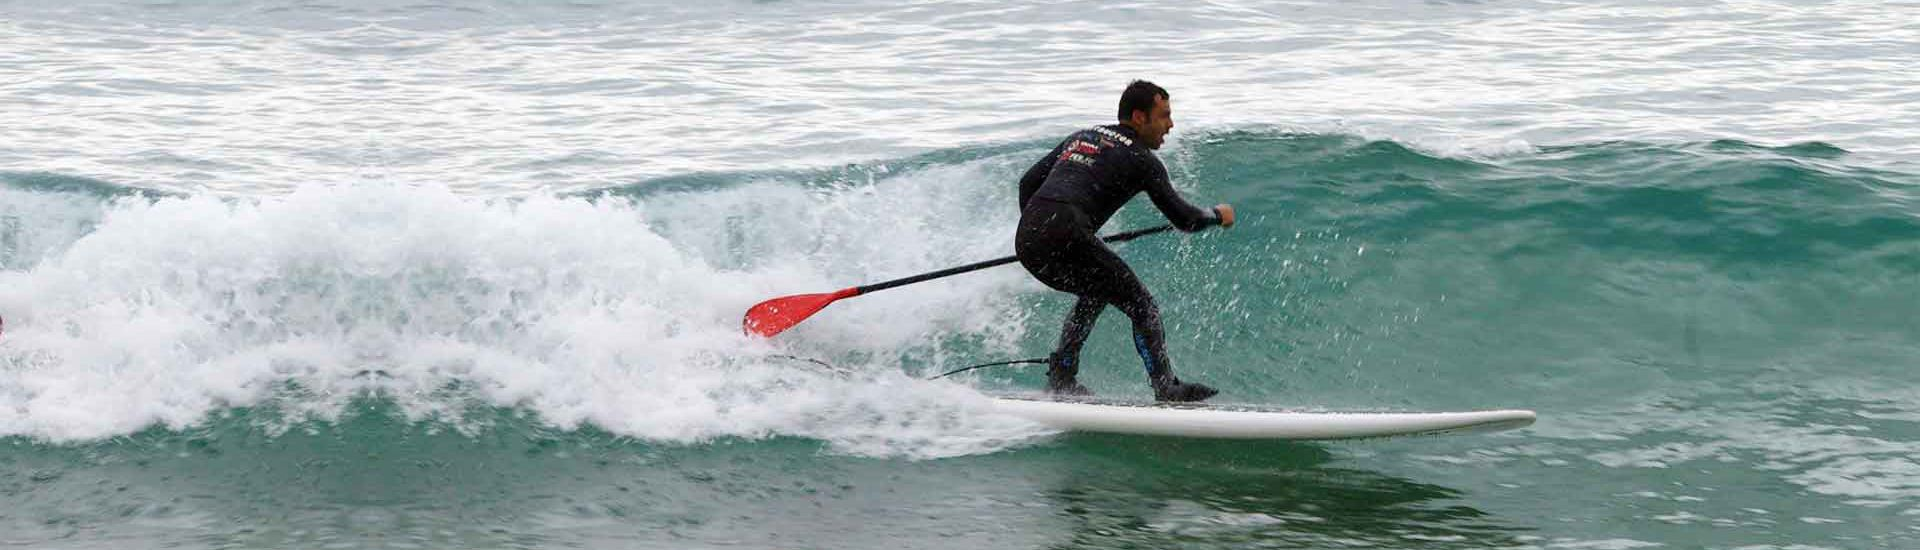 Stand Up Paddle Surf en olas